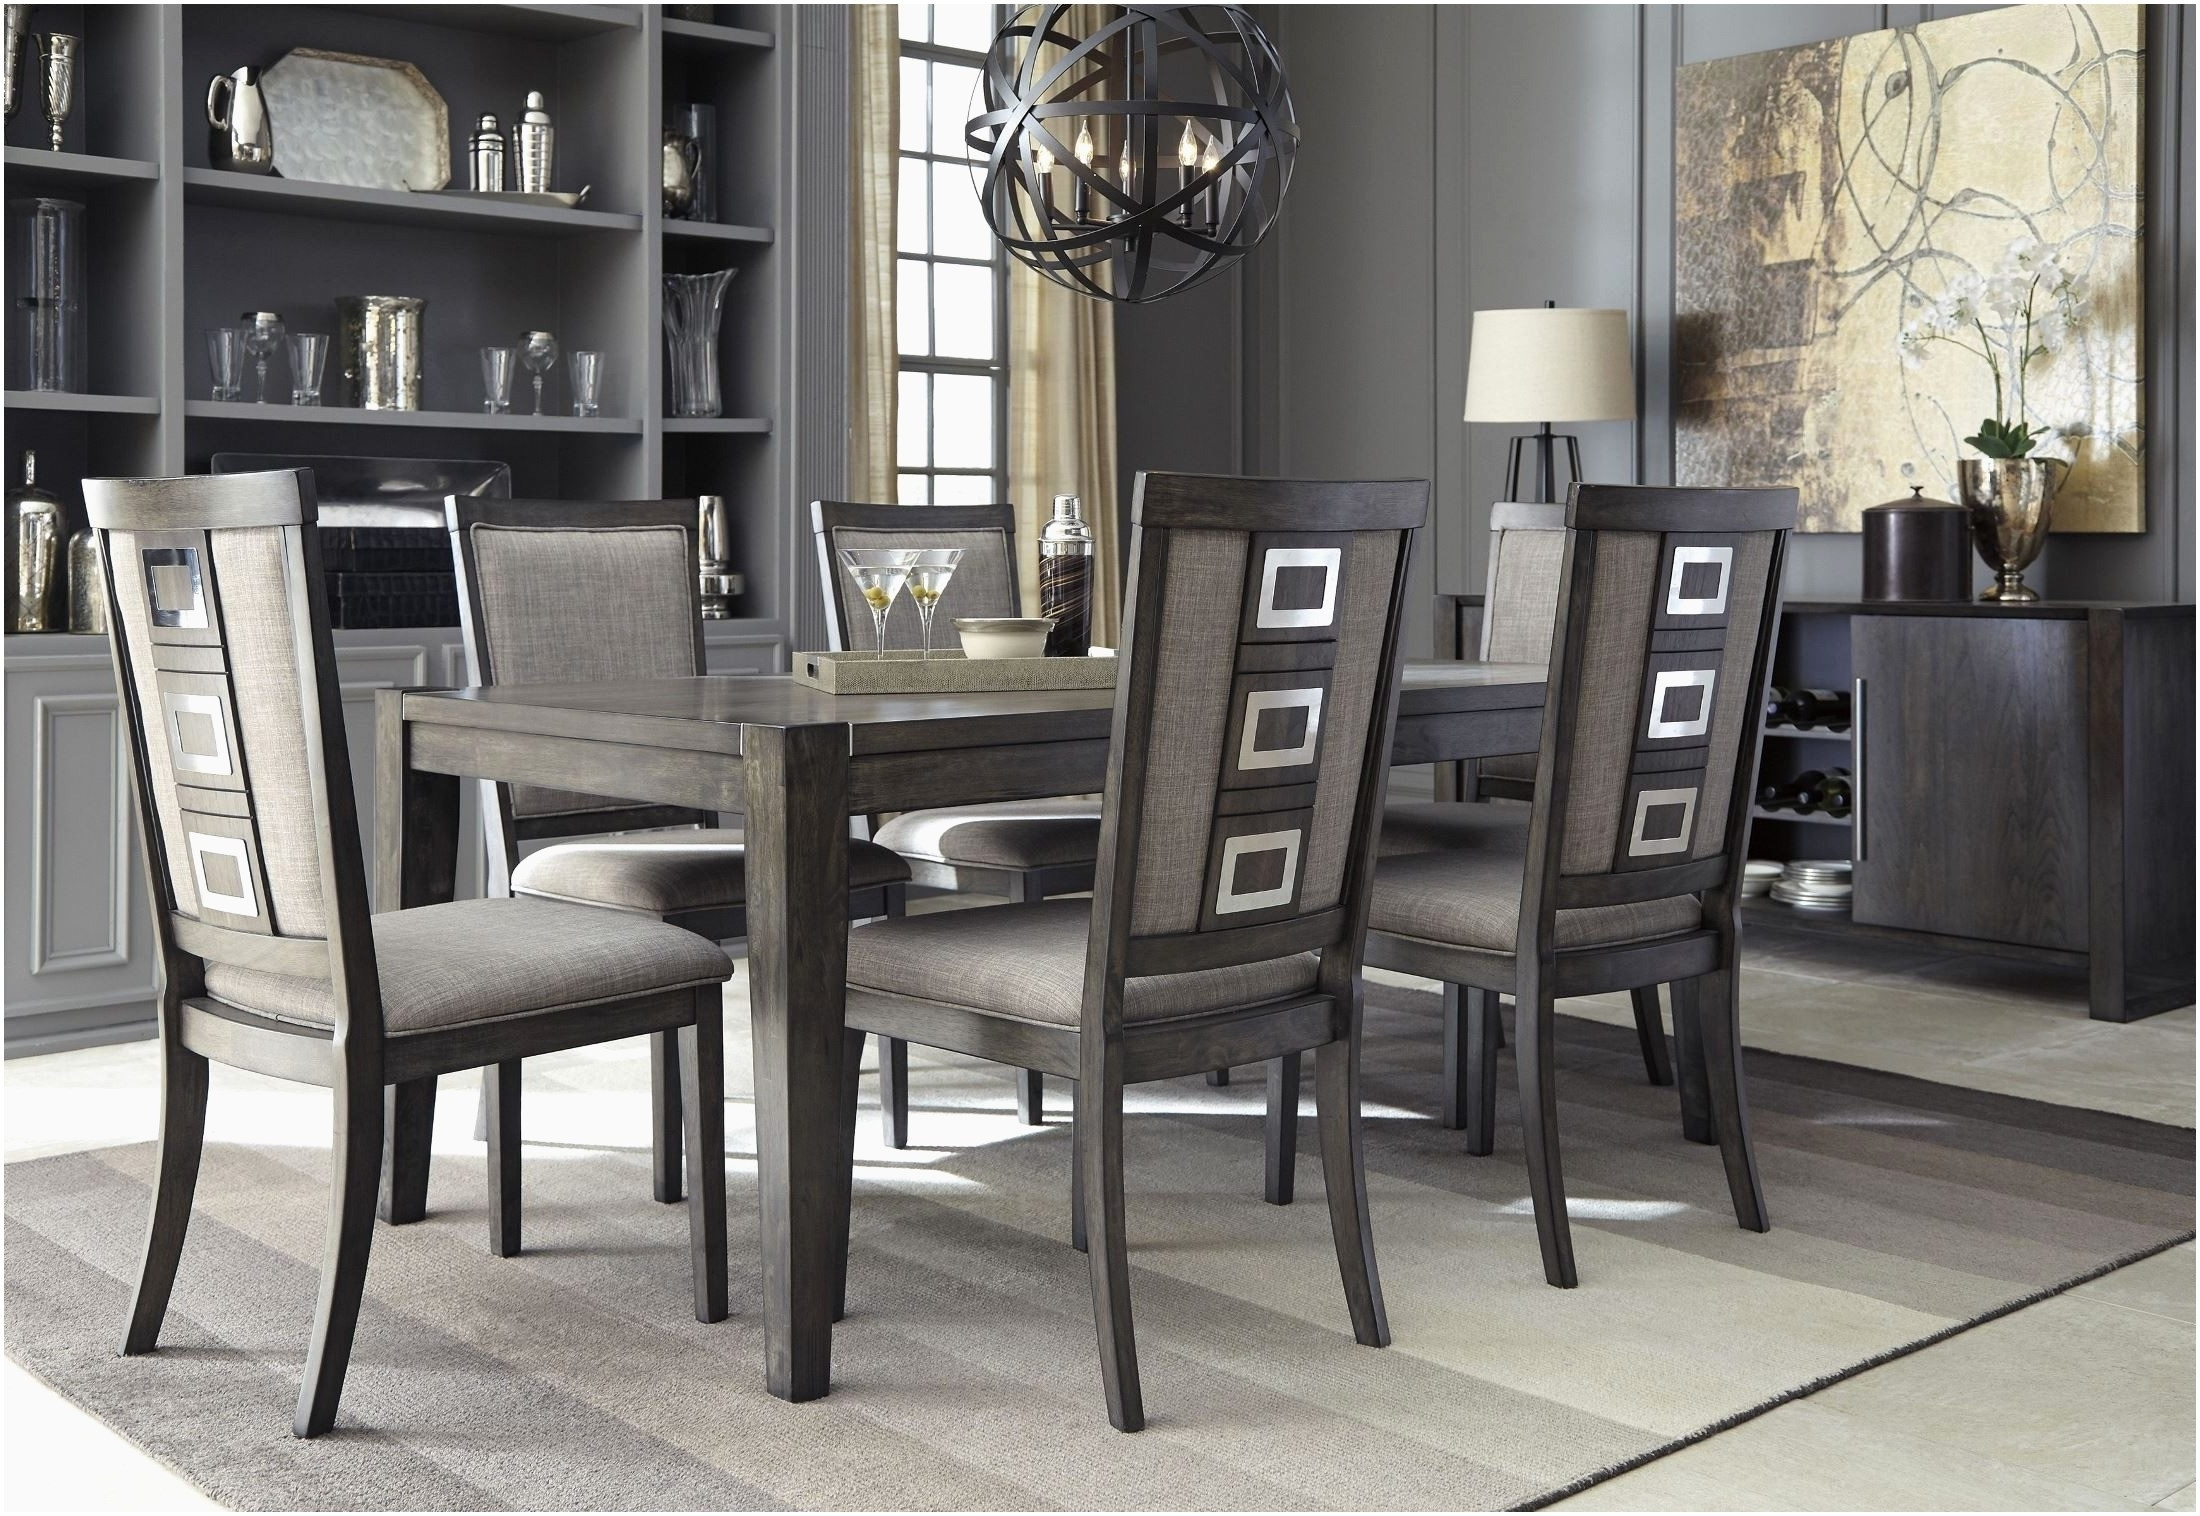 Engaging Grand Dining Room At Chapleau Extension Dining Table Throughout Favorite Chapleau Extension Dining Tables (View 11 of 25)